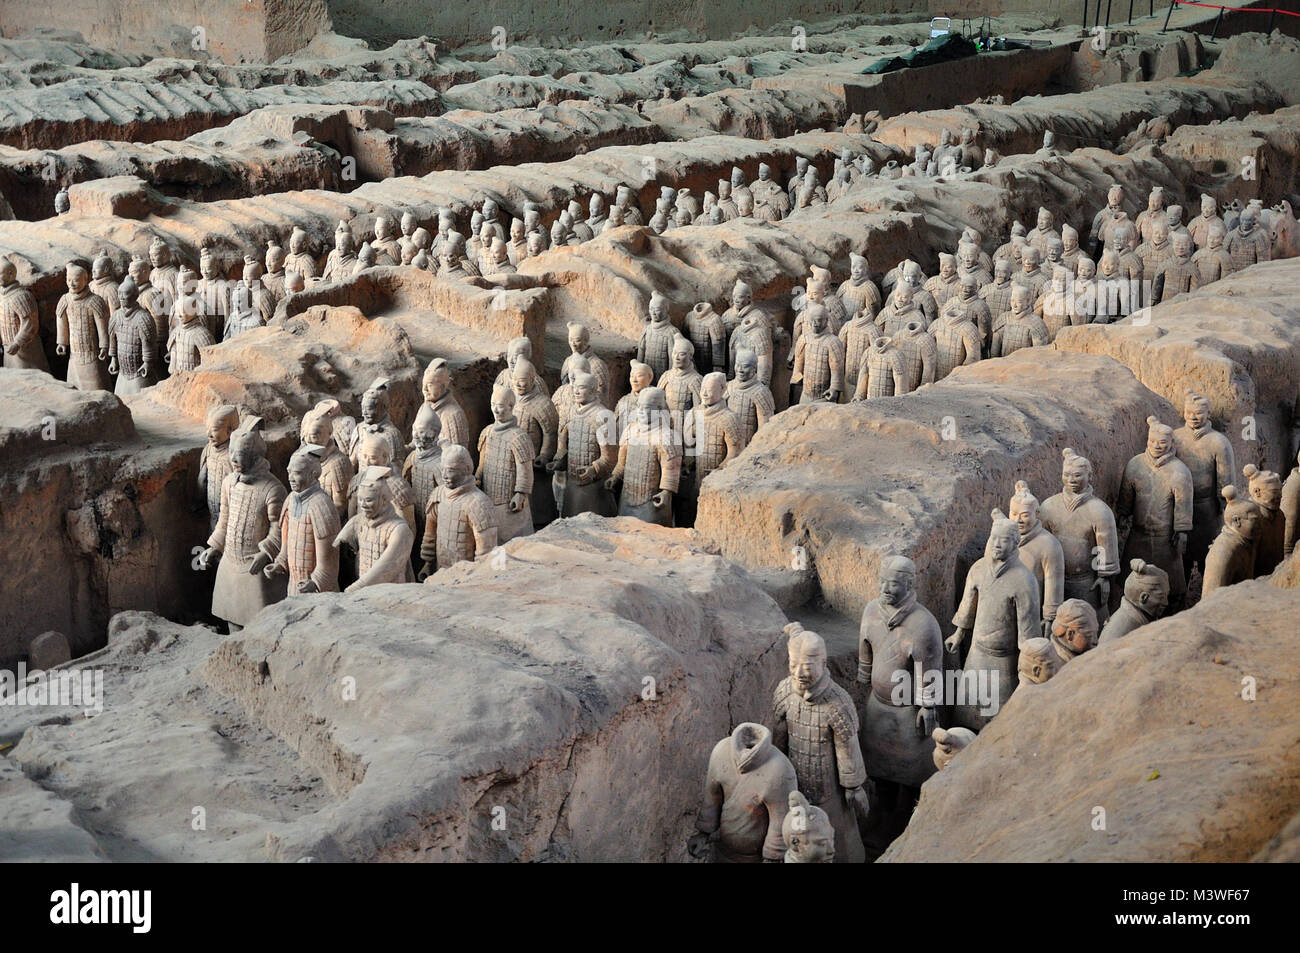 Terracotta Warriors ancient army guarding Emperor's tomb Xi'an China - Stock Image